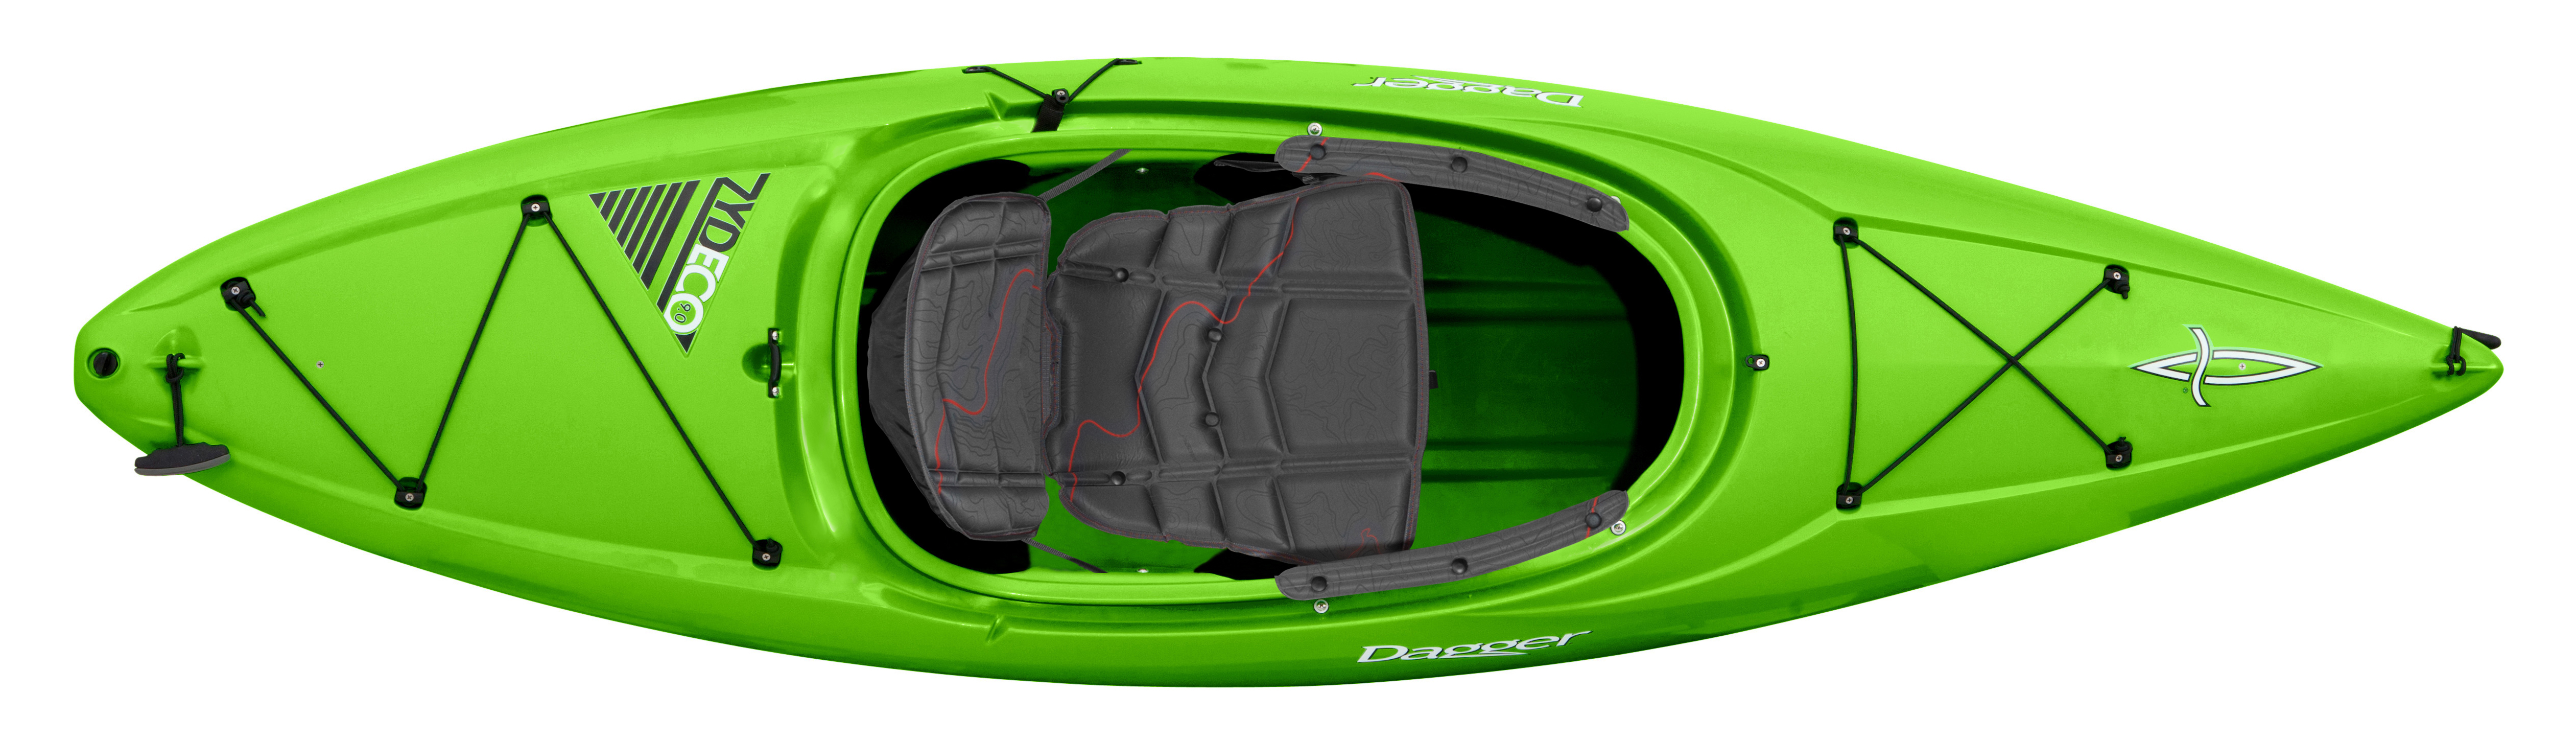 Kayaks: ZYDECO 9.0 by Dagger - Image 2849